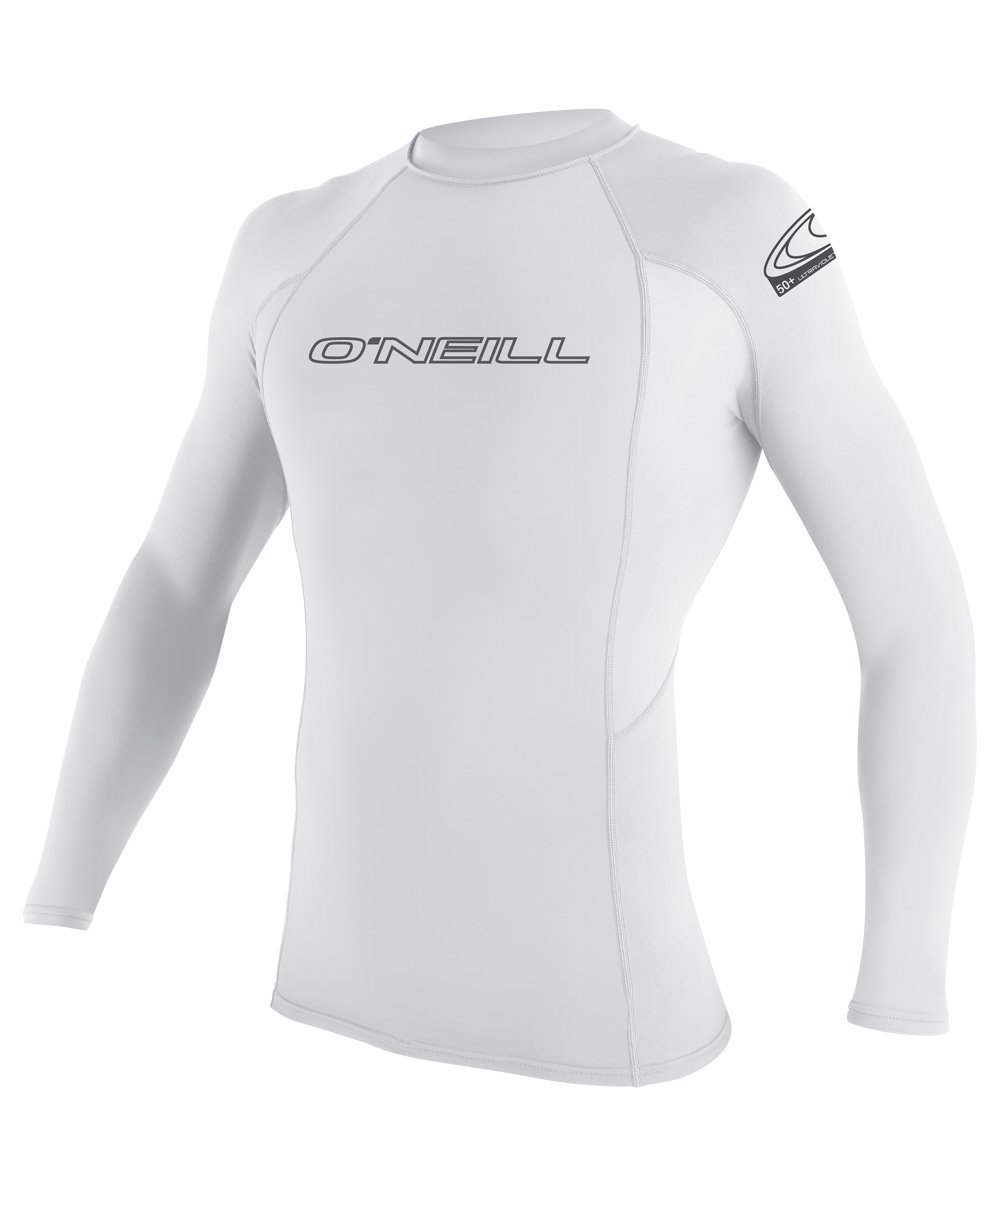 O'Neill Men's Basic Skins UPF 50+ Long Sleeve Rash Guard, White, X-Large by O'Neill Wetsuits